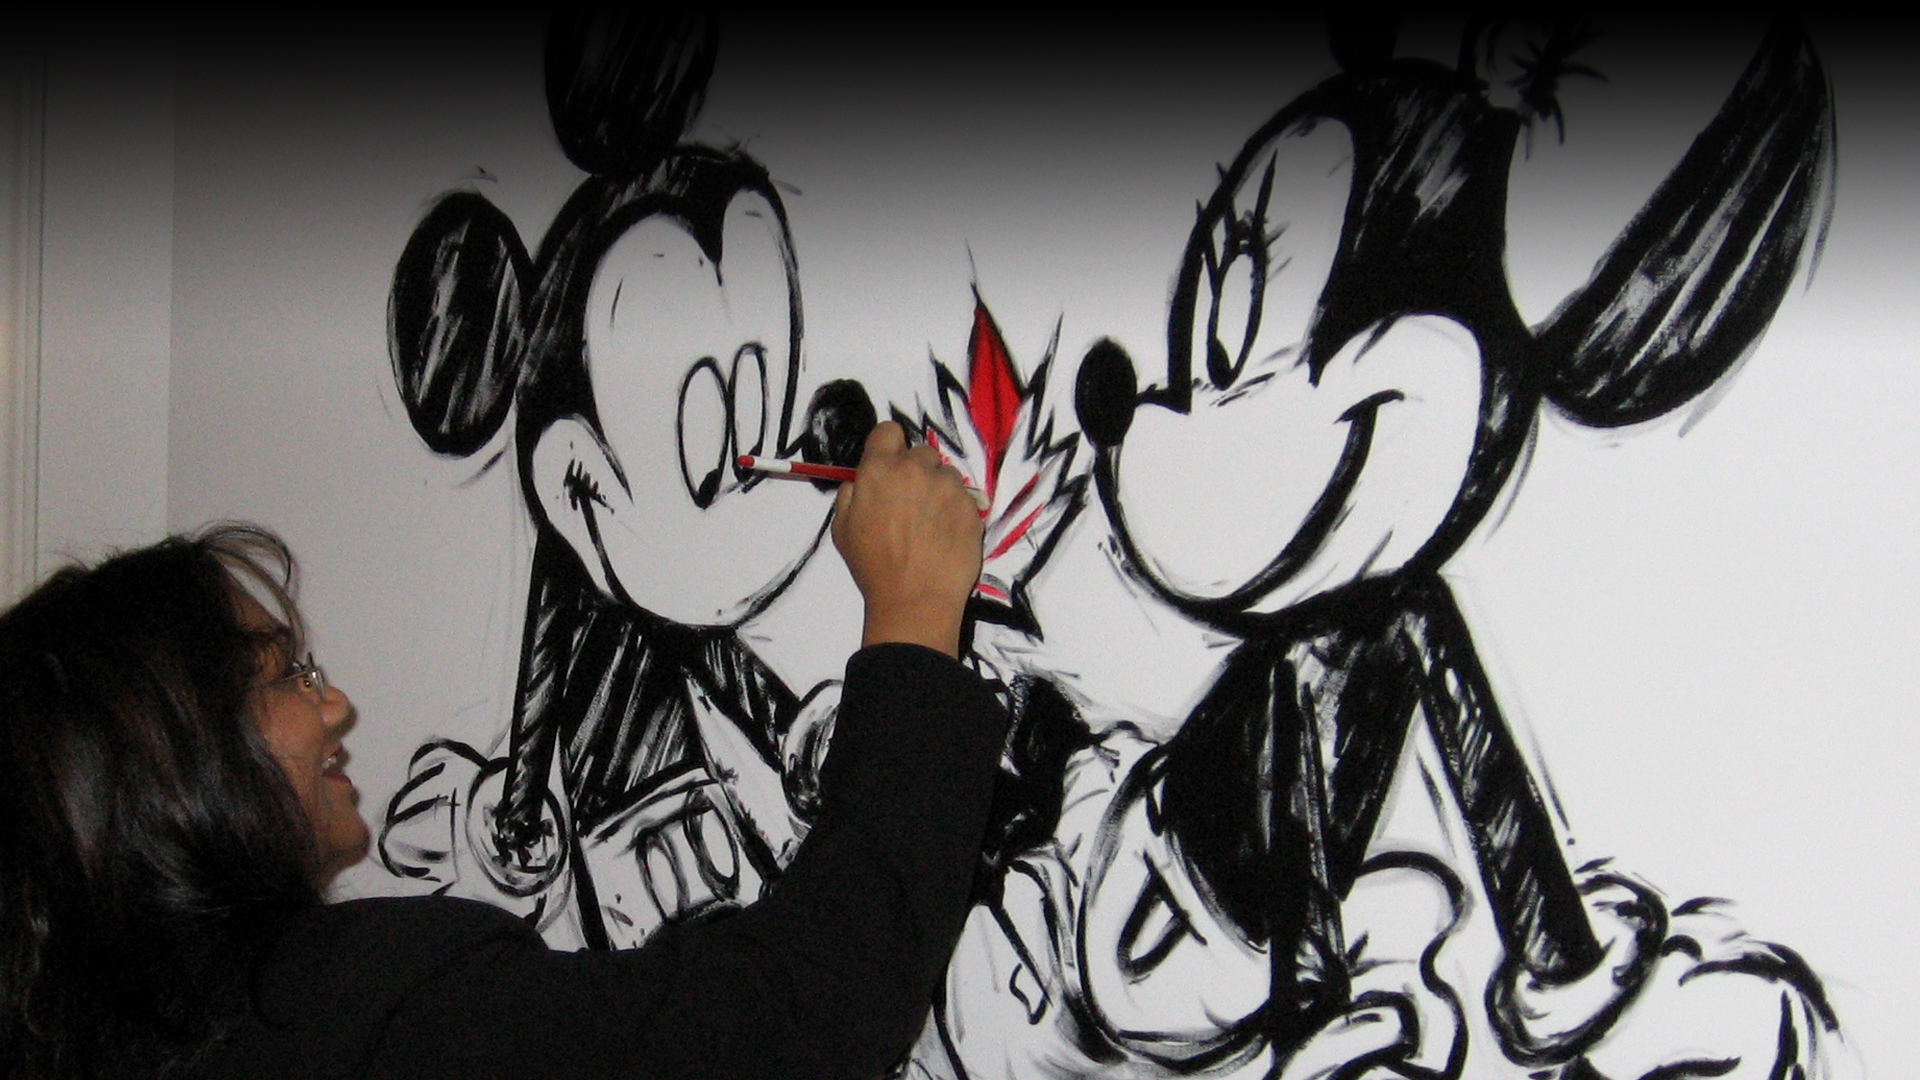 A woman painting a red leaf on a wall image of Mickey and Minnie Mouse.